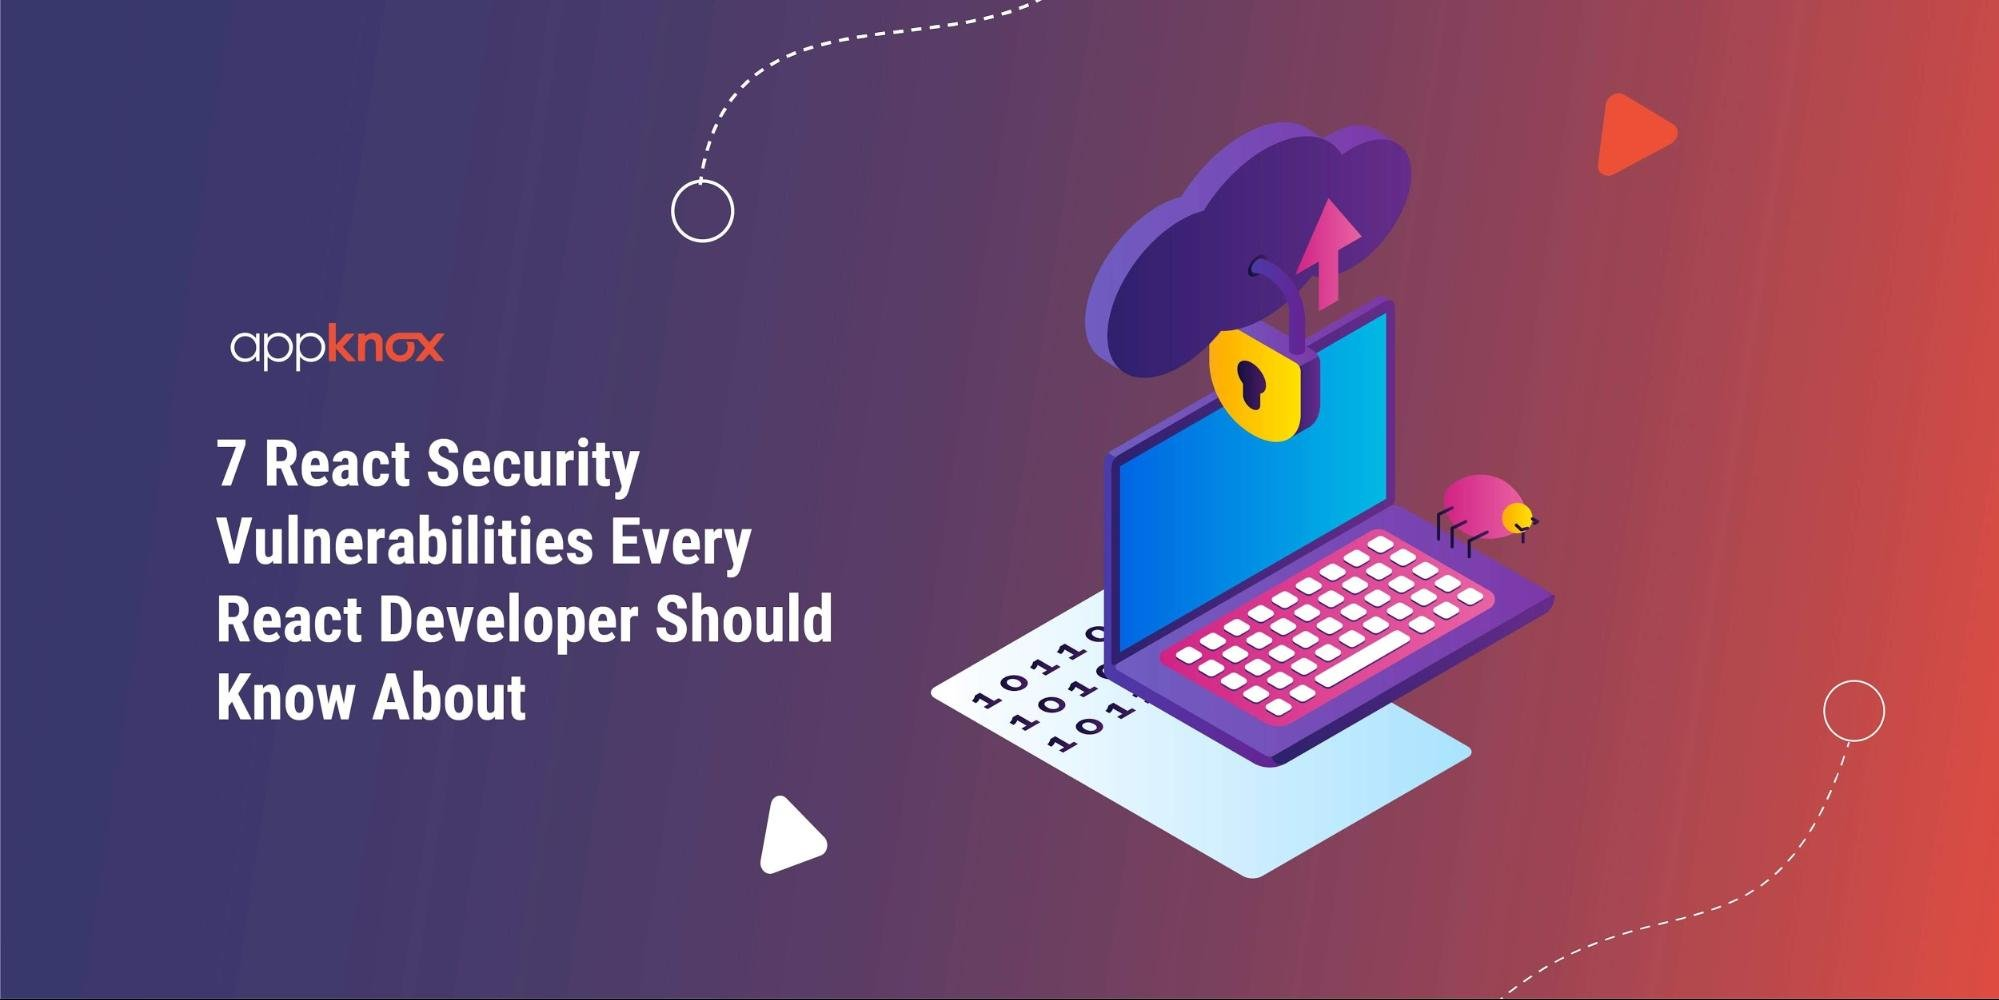 7 React Security Vulnerabilities Every React Developer Should Know About